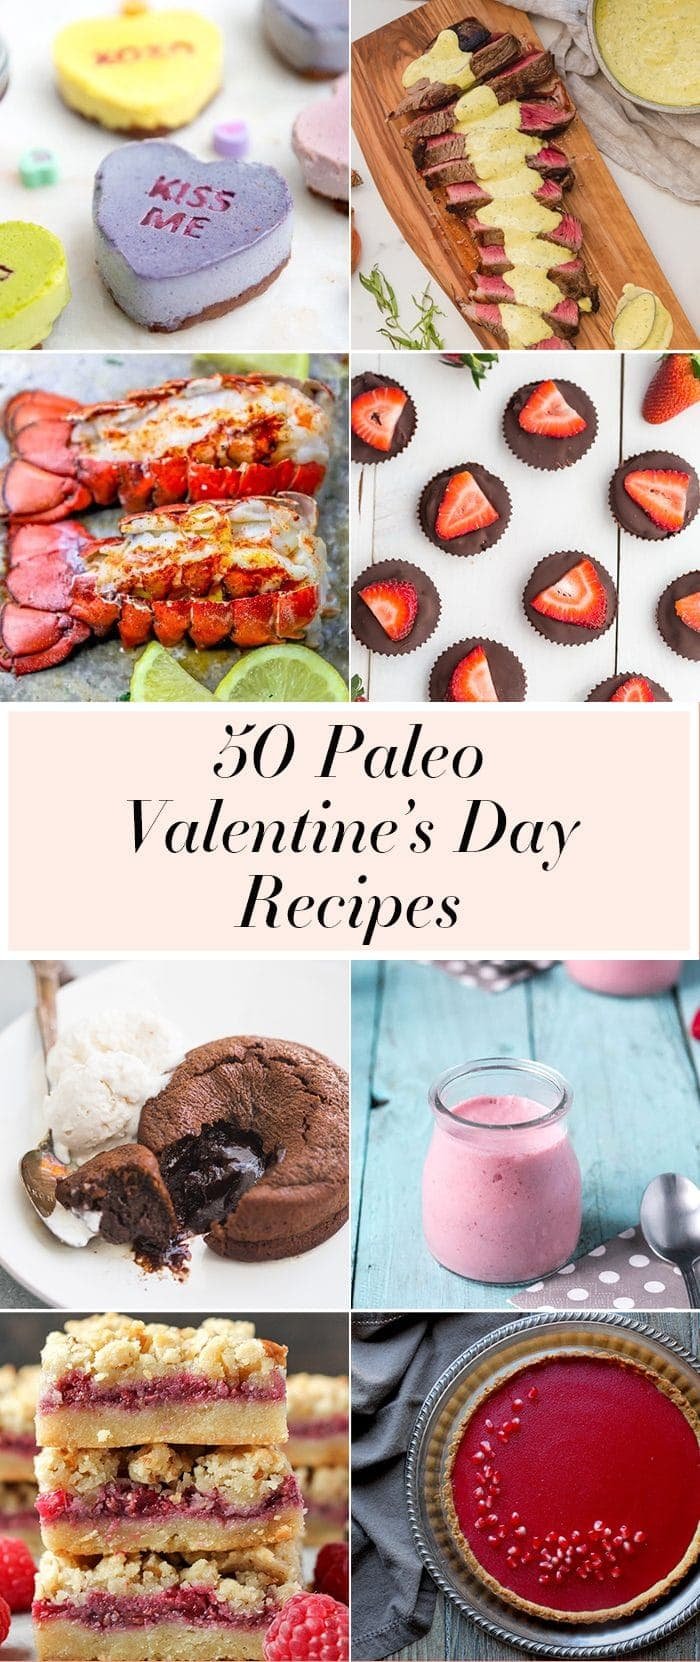 Compilation of paleo Valentine's Day recipes